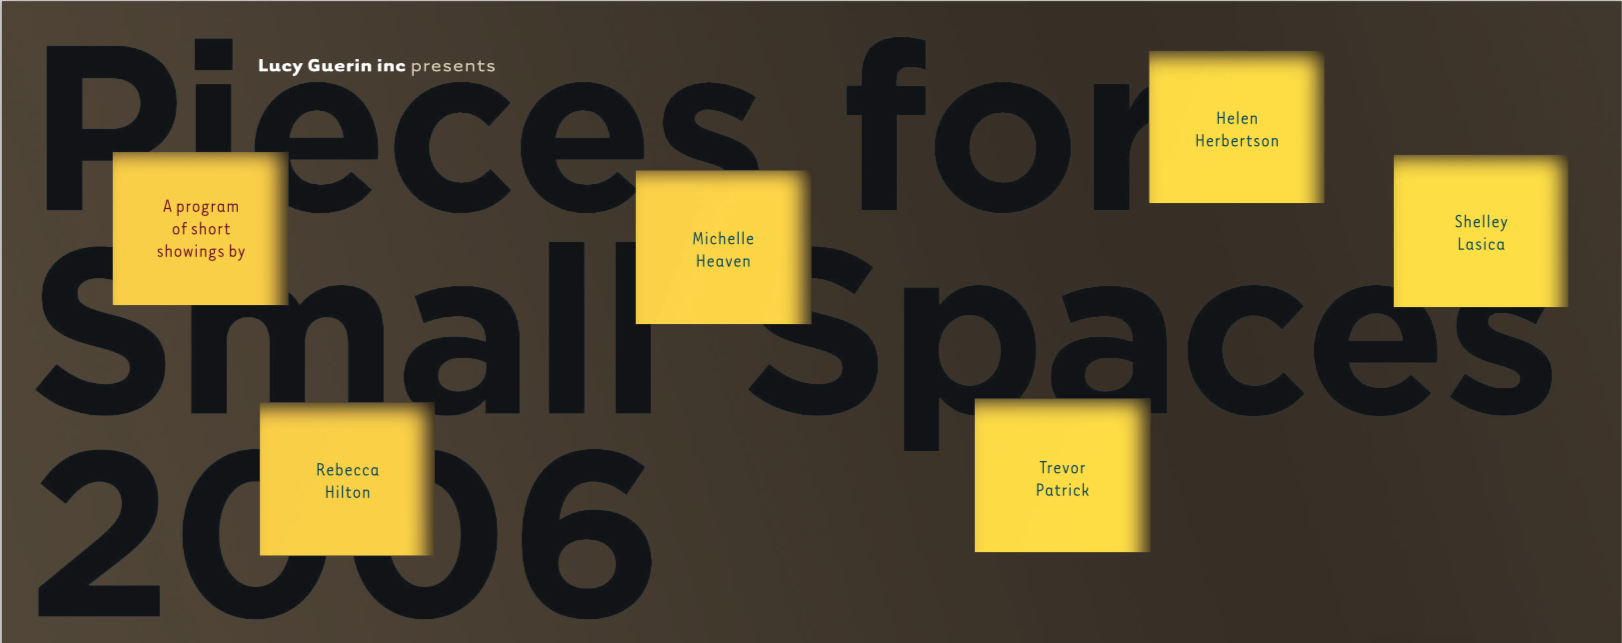 Poster for Pieces for Small Spaces 2006 with text in small yellow squares on a dark brown background